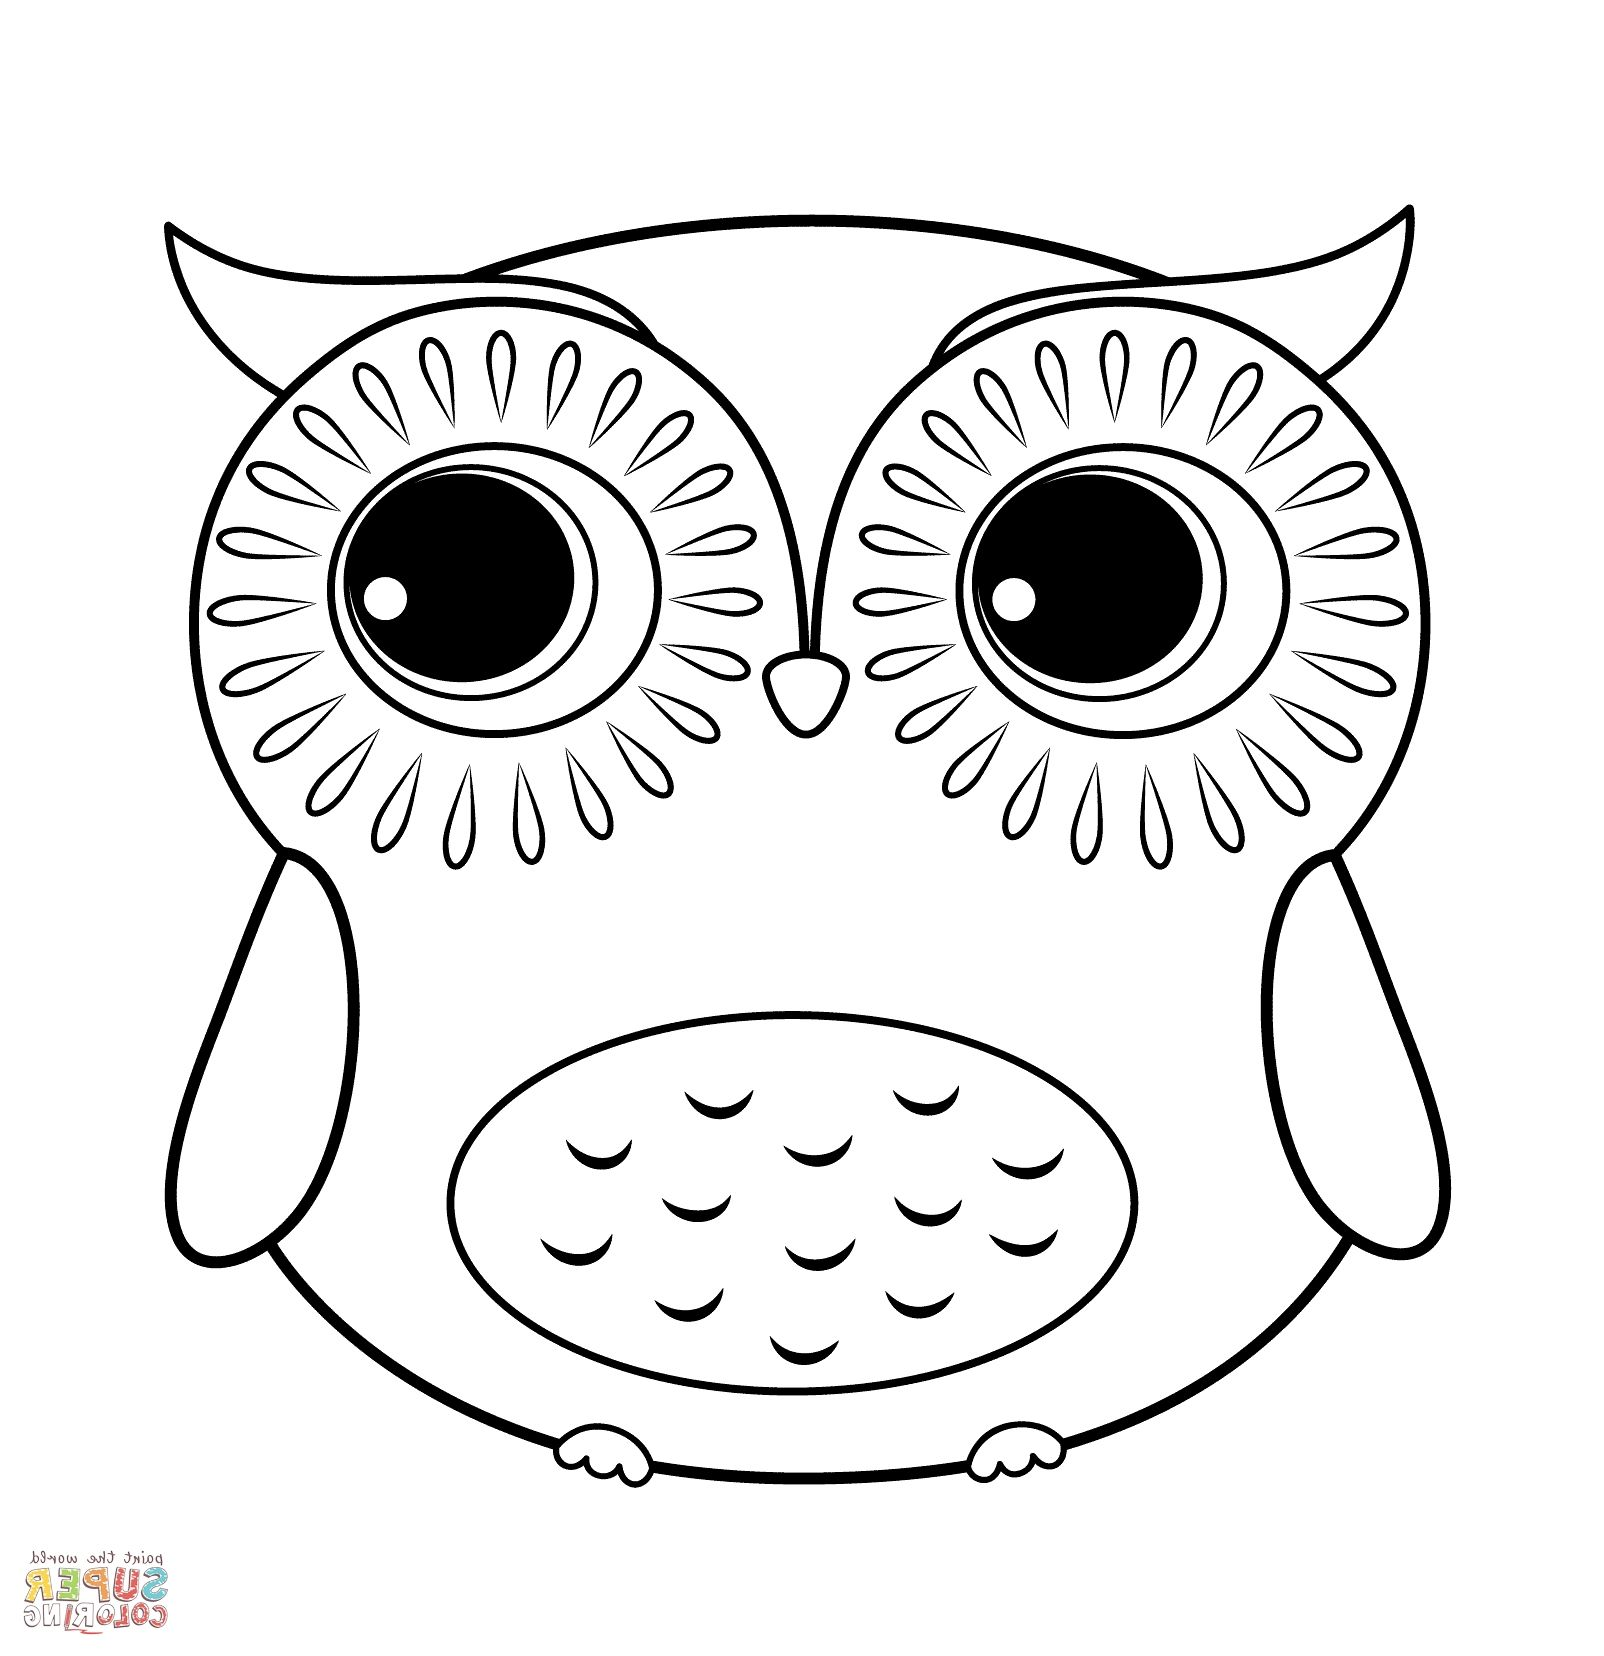 Coloring Pages Owls Owl Coloring Pages Cartoon Coloring Pages Cute Easy Animal Drawings